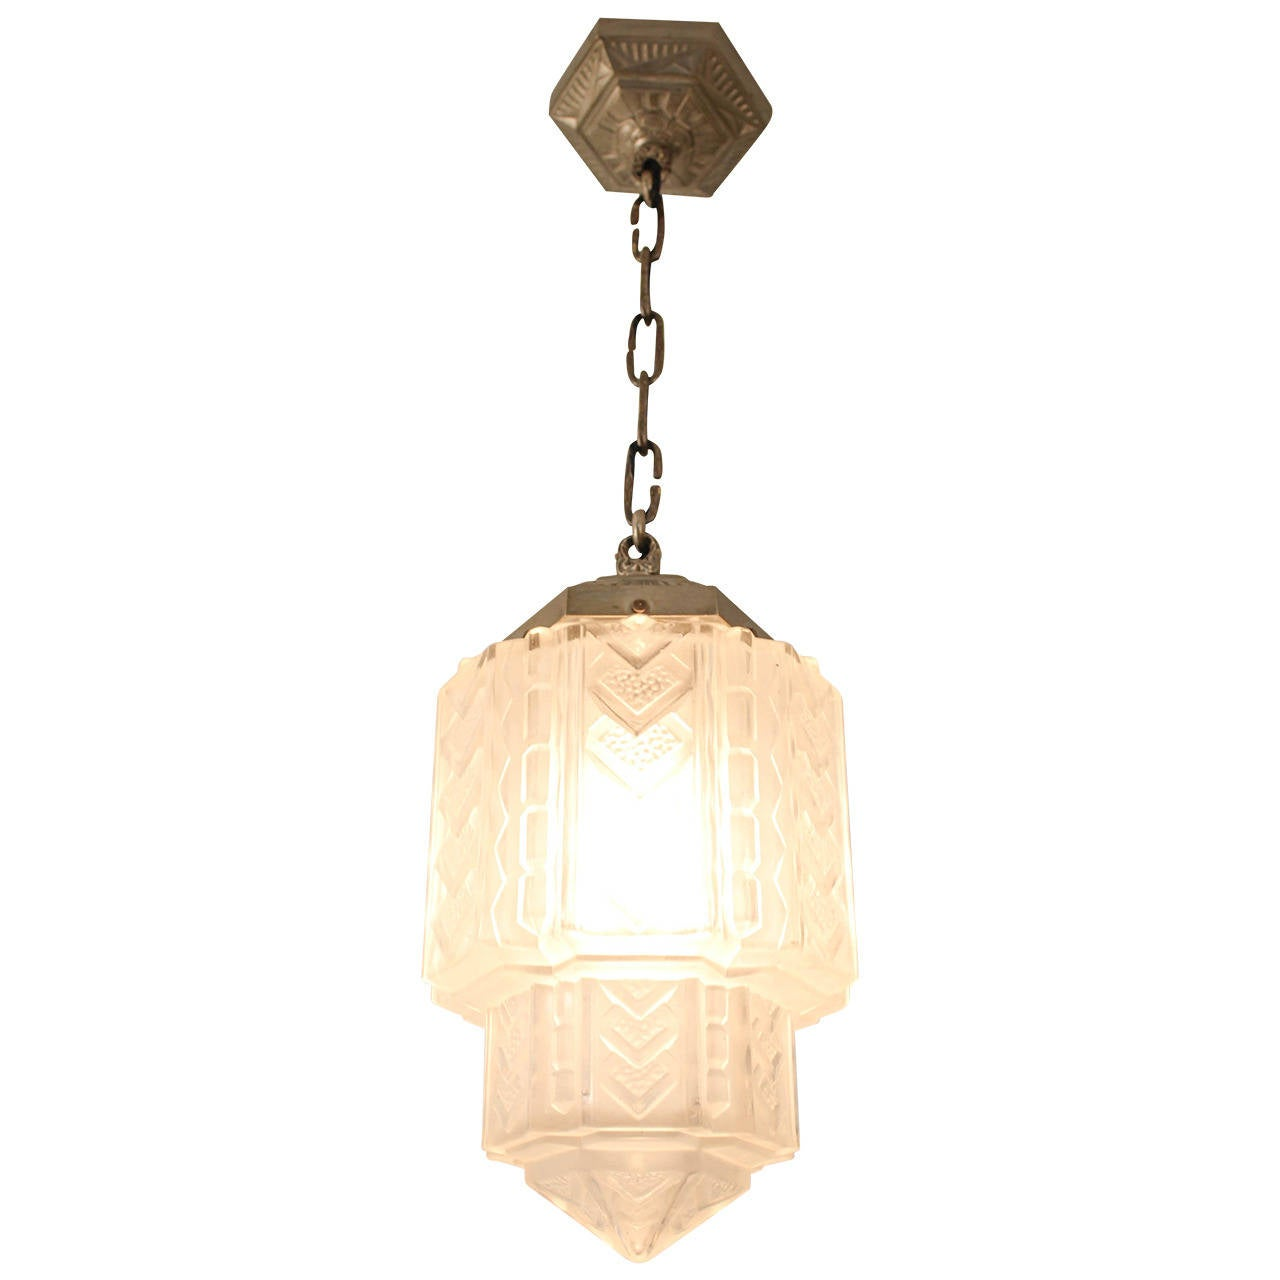 Stunning french art deco hall lamp 1930s at 1stdibs for Art deco era dates